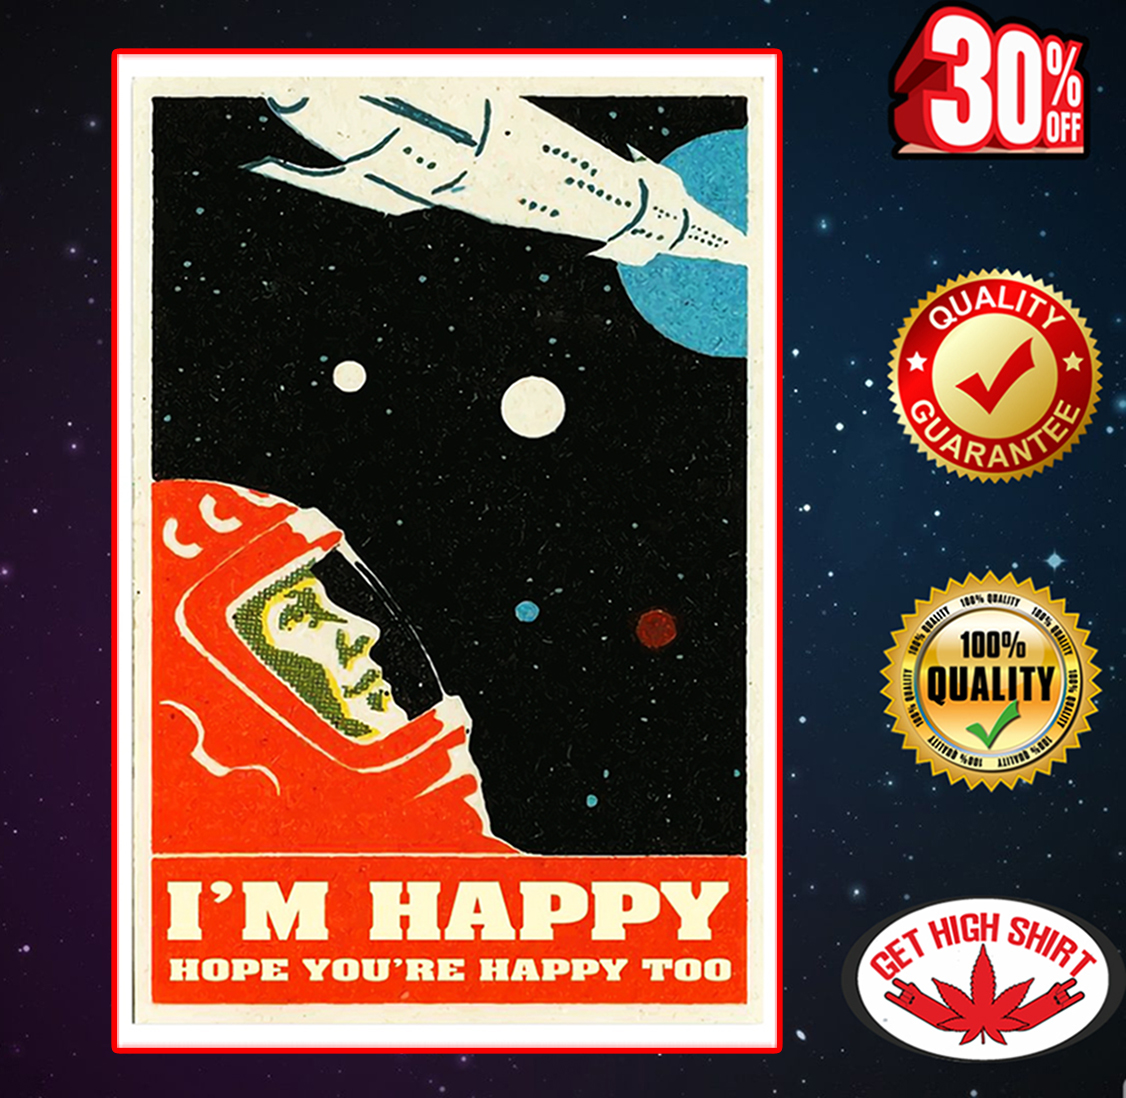 I'm Happy Hope You're Happy Too poster 16x24